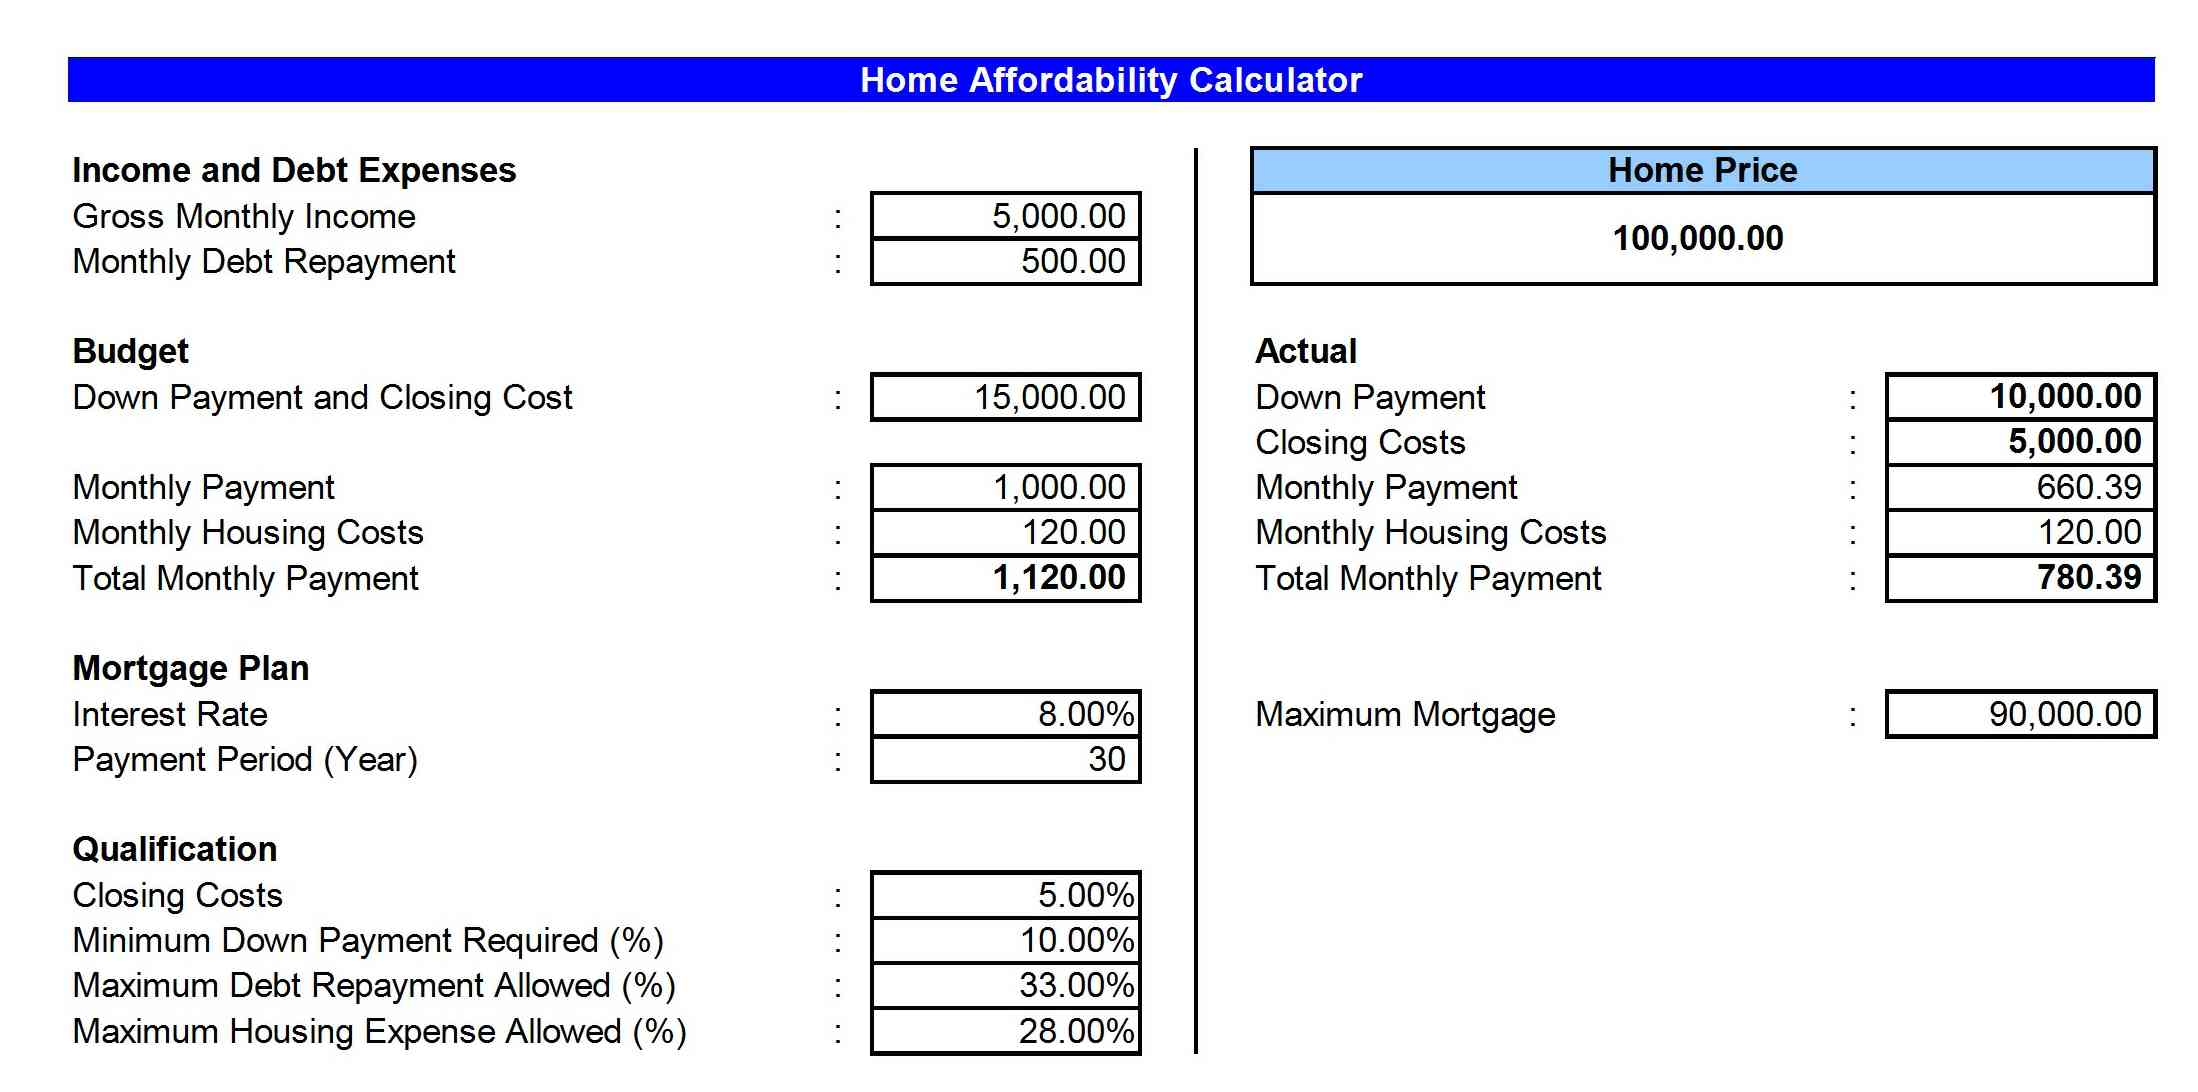 Home-Affordability-Calculator